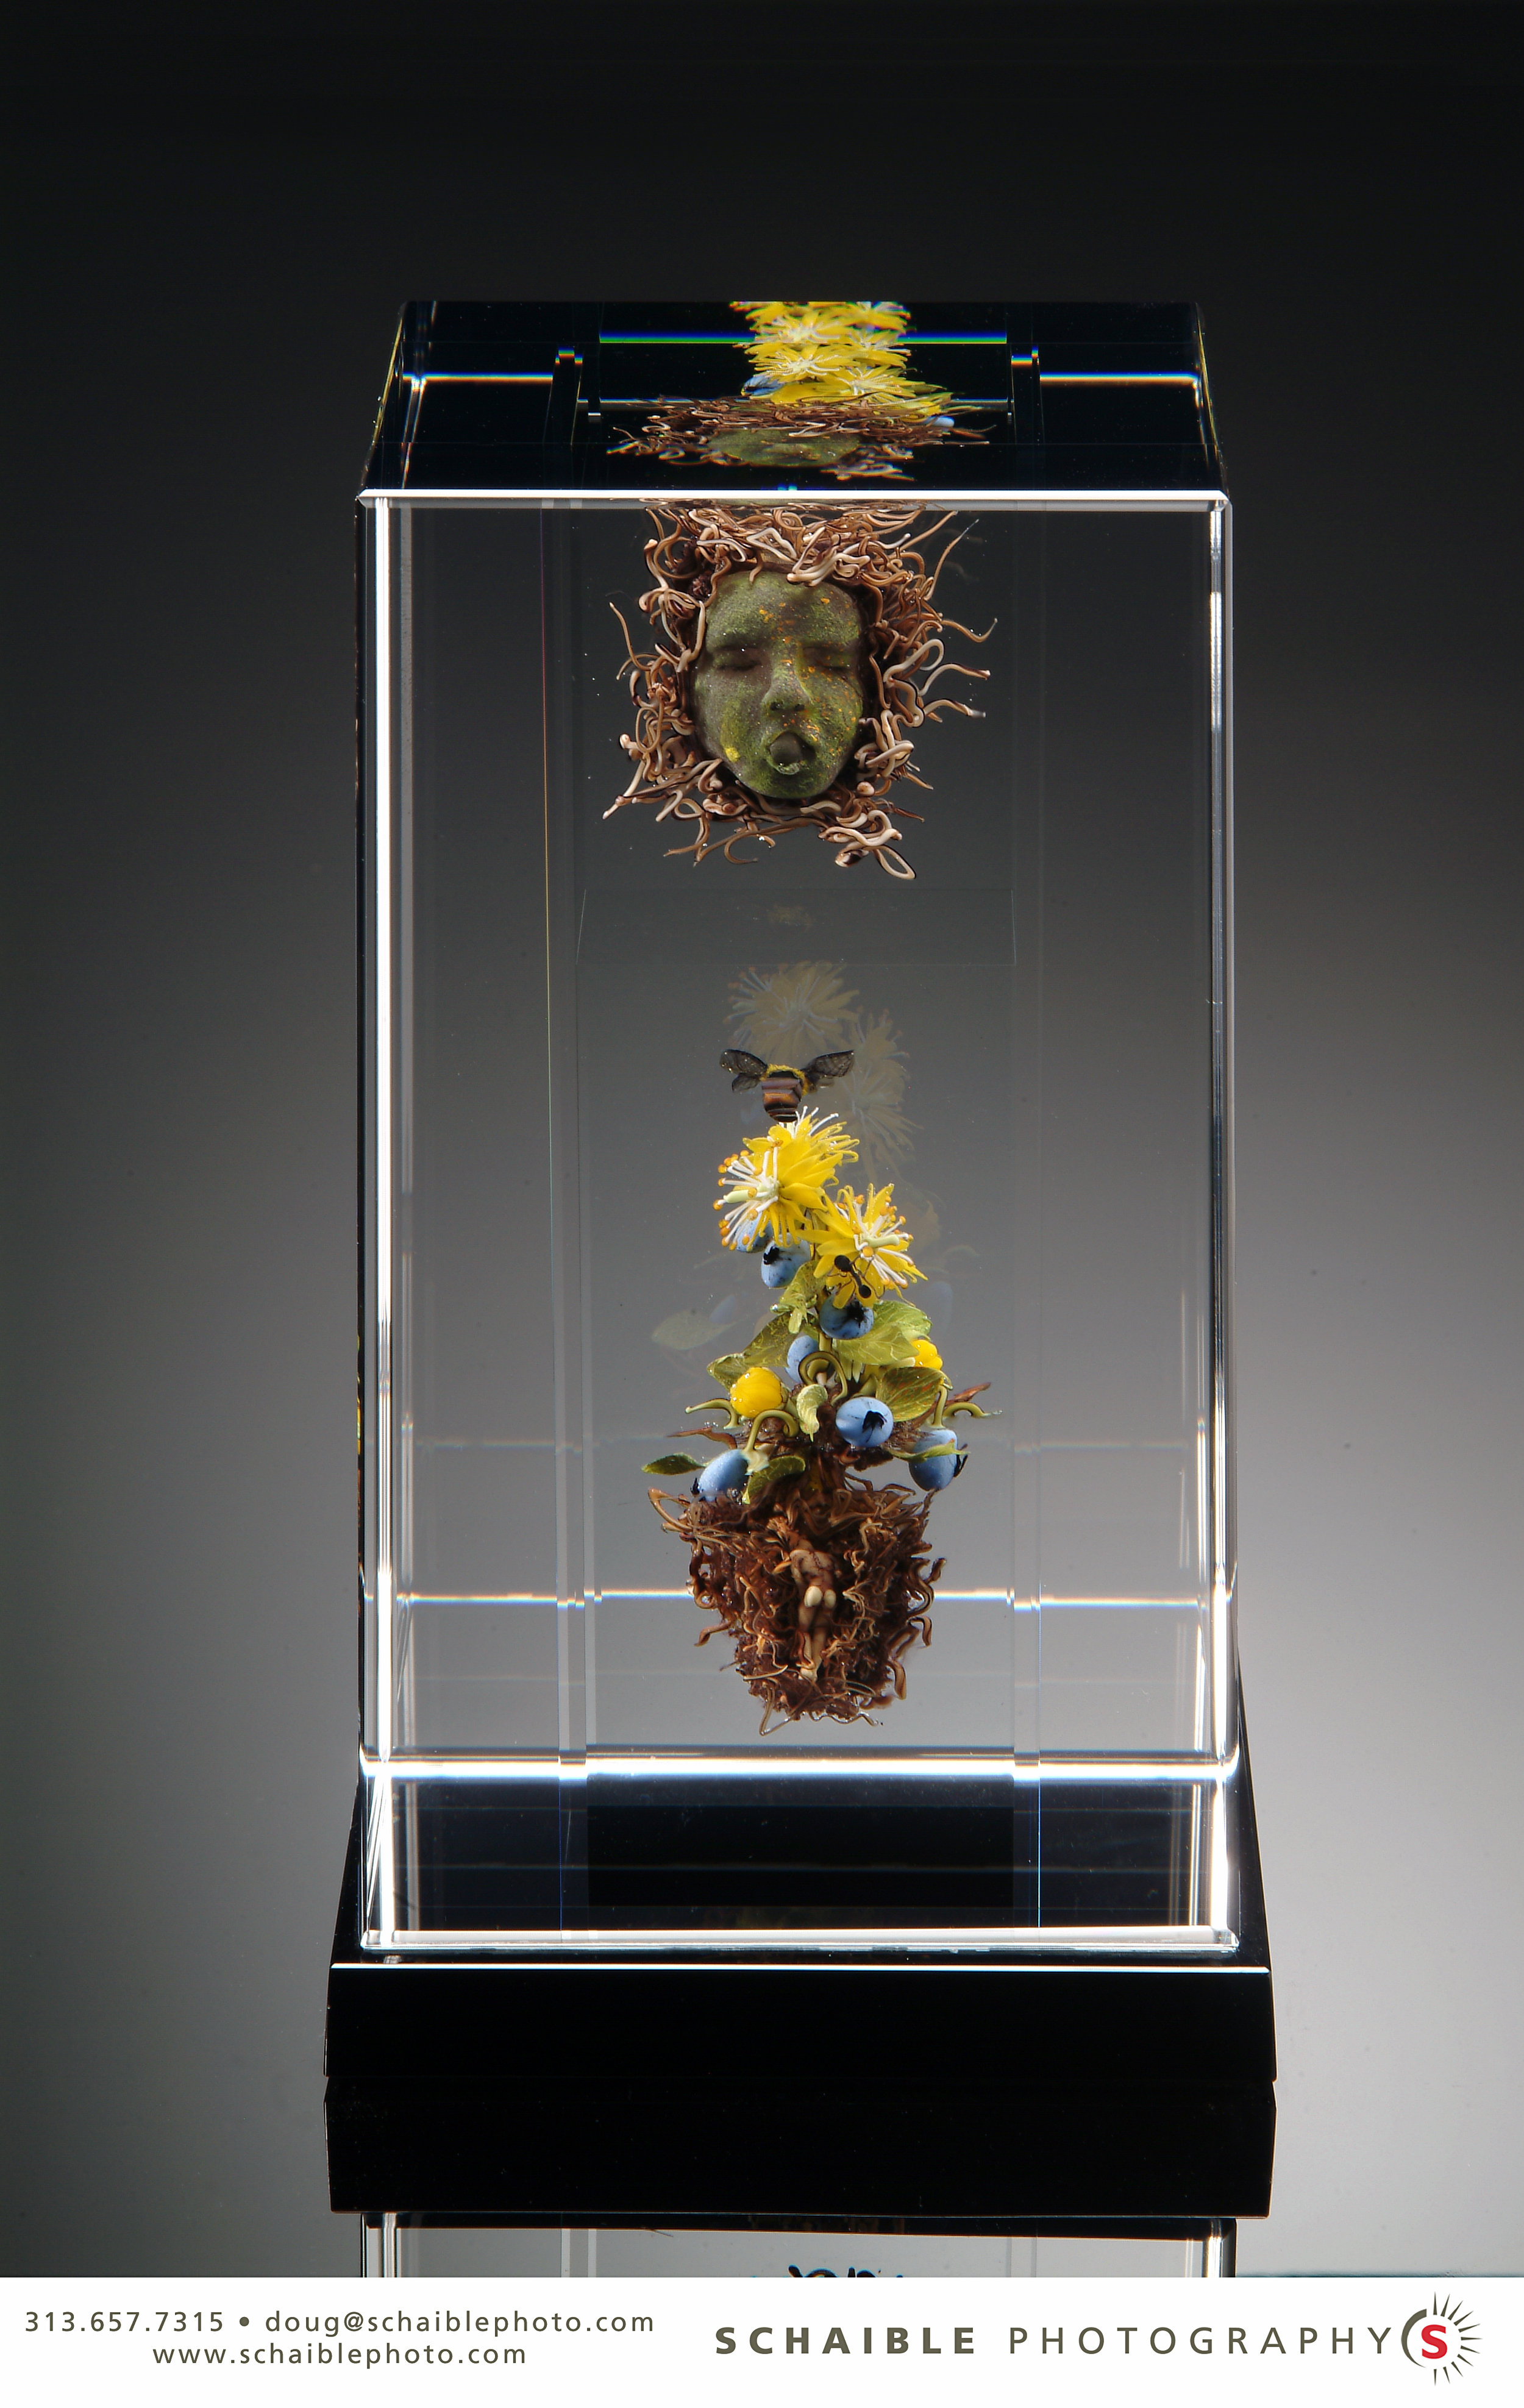 2004; Column: Honeybee, Yellow Flowers and Blueberries with Masks and Figures; H. 8.5 x L. 5.0 x W. 5.0 inches